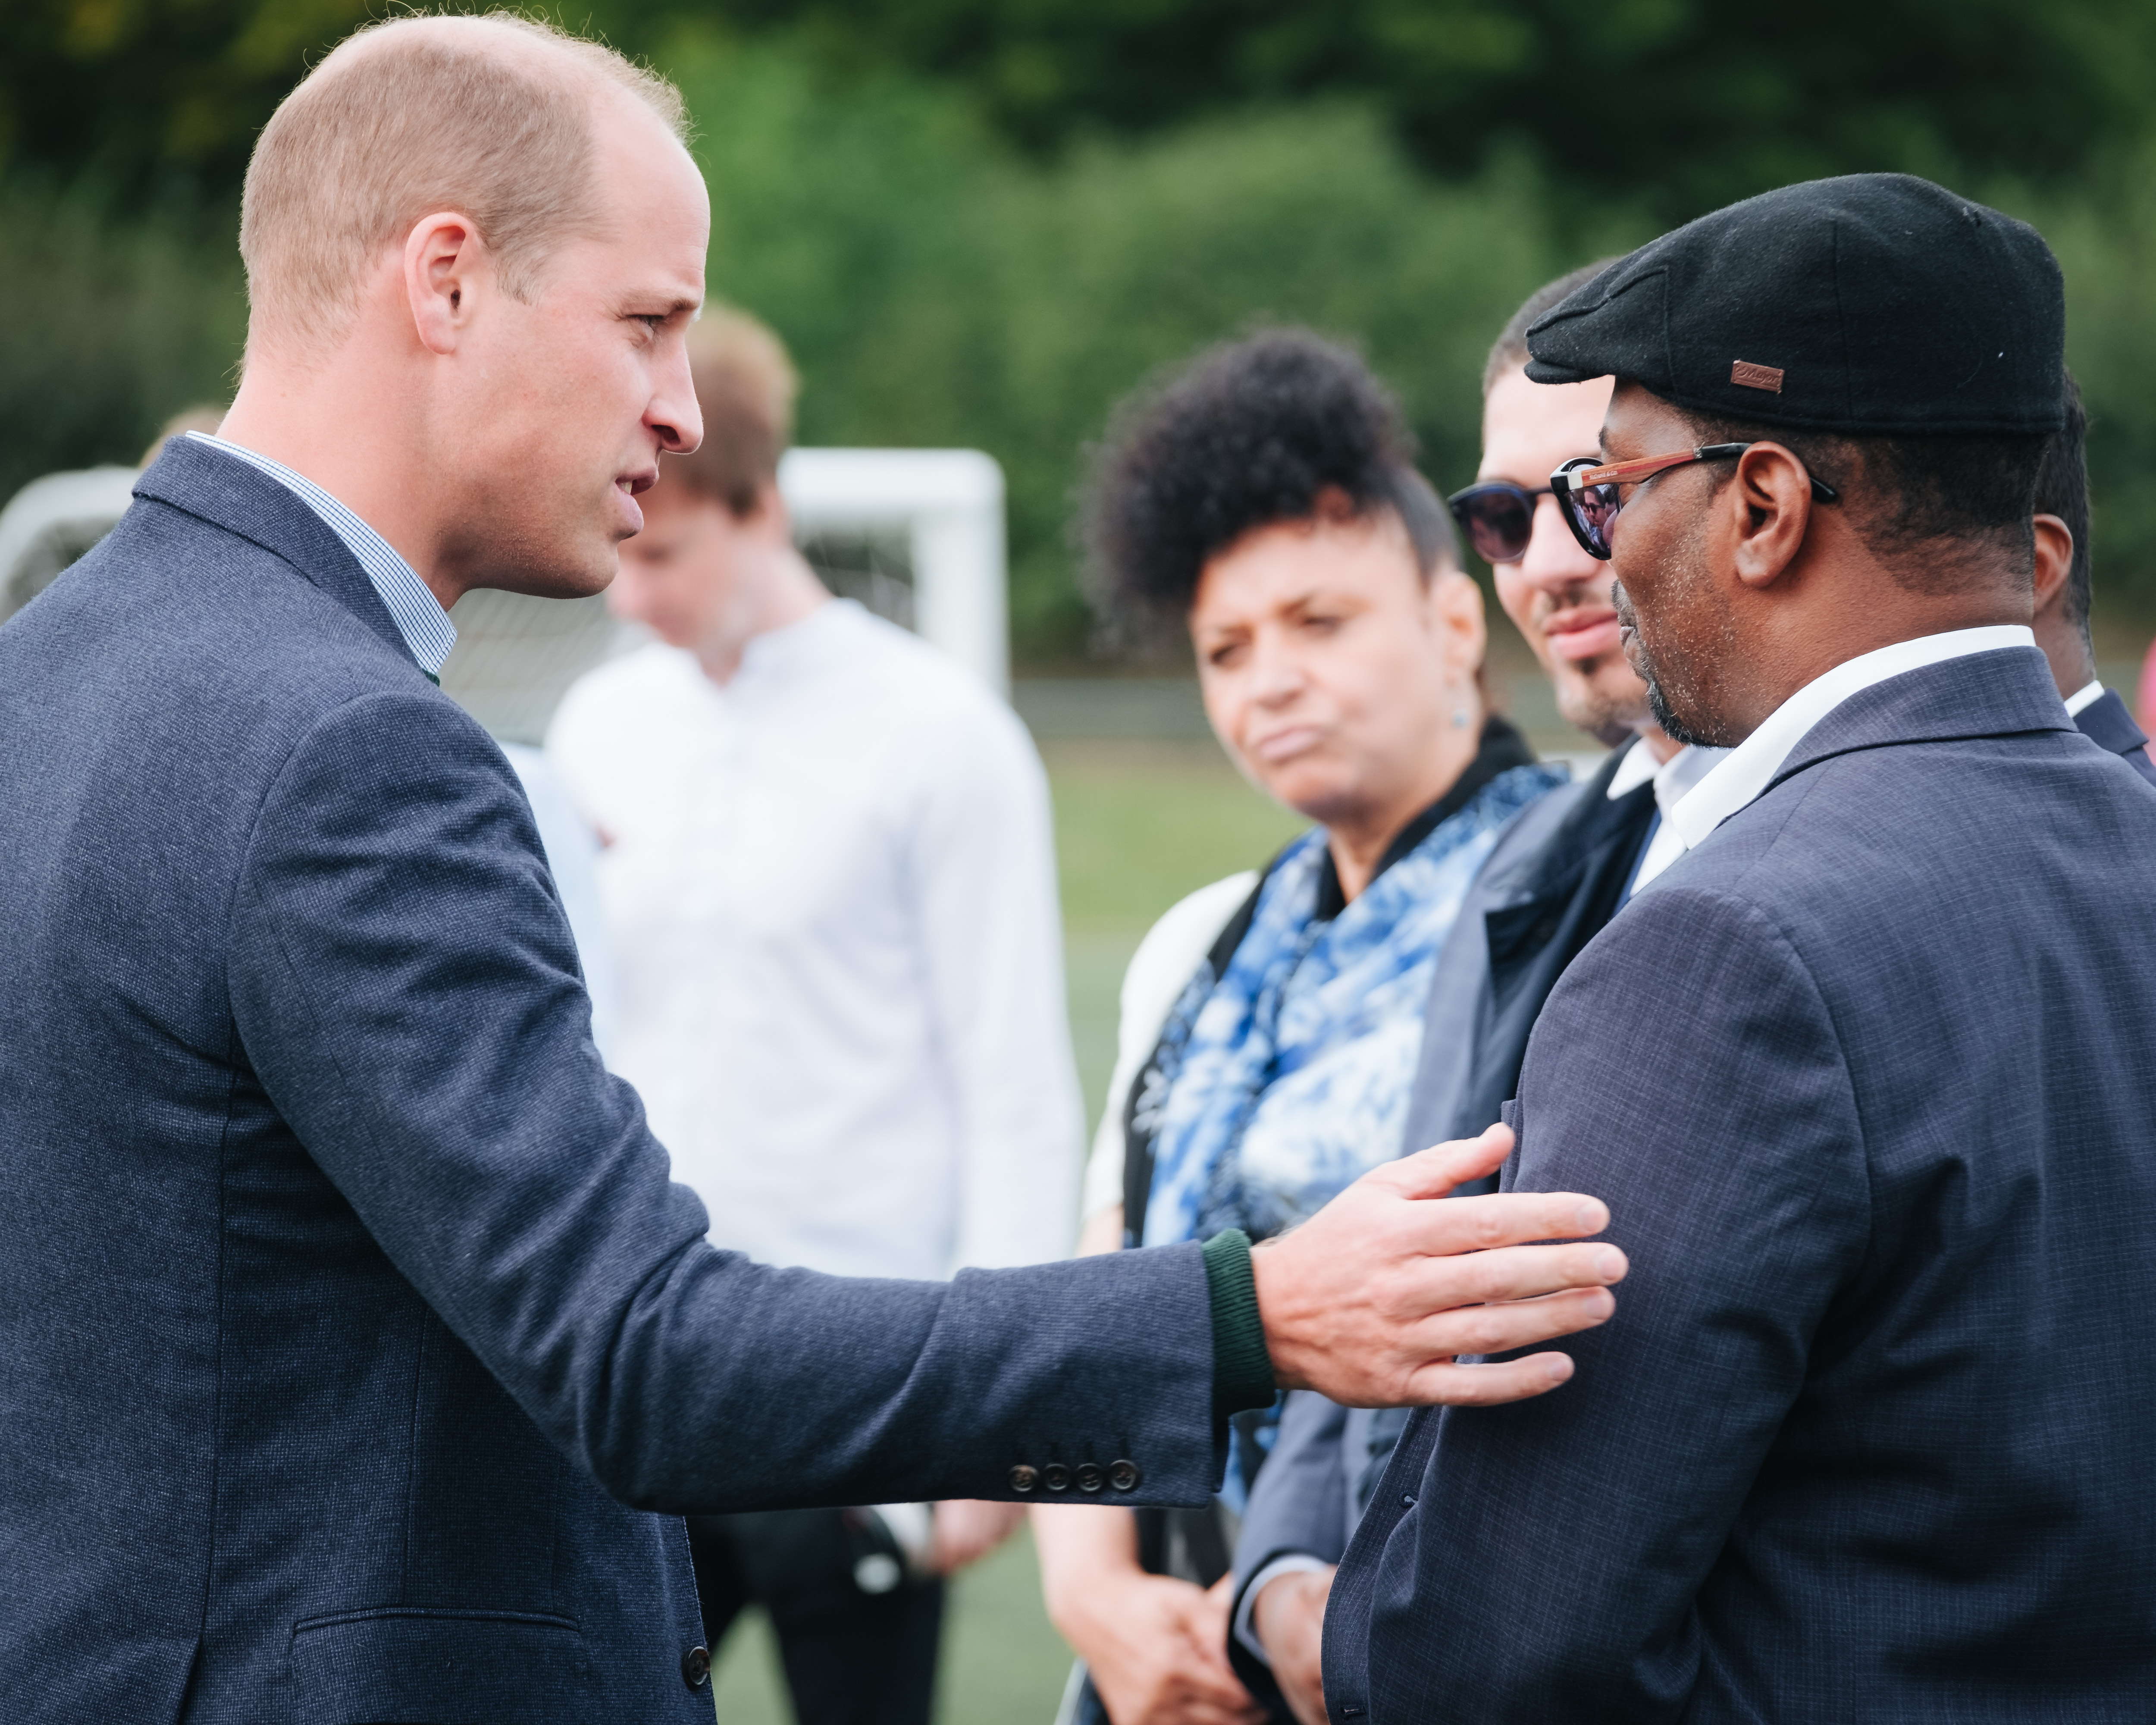 The Duke of Cambridge, FA President, visits Hendon FC as part of the Heads Up campaign.